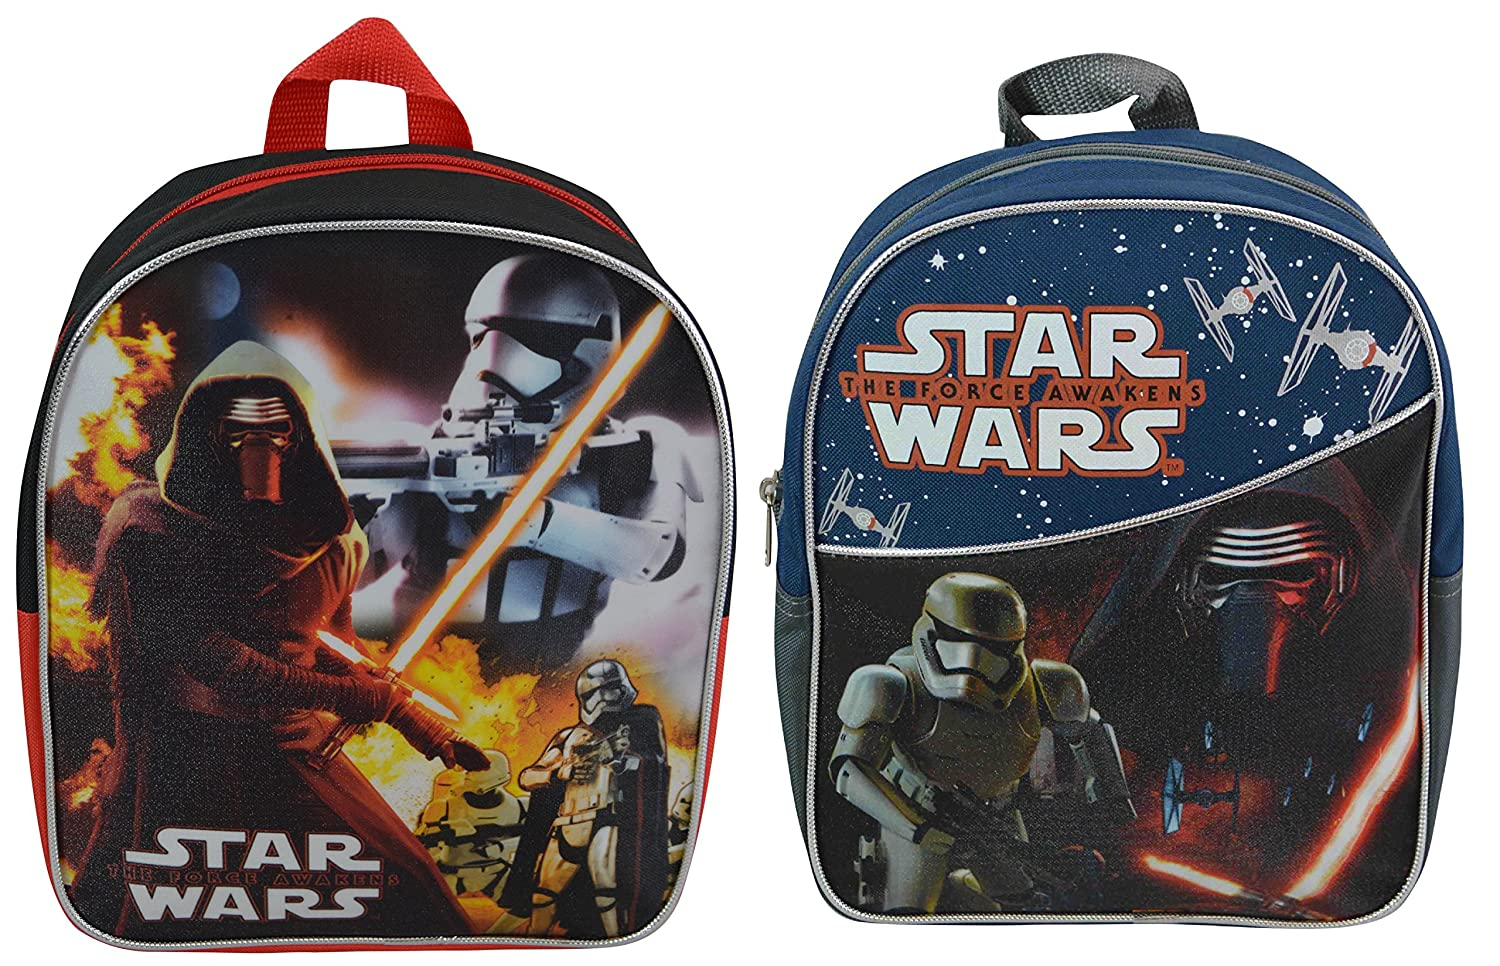 Backpack Red Star Wars: Episode 7 The Force Awakens 11